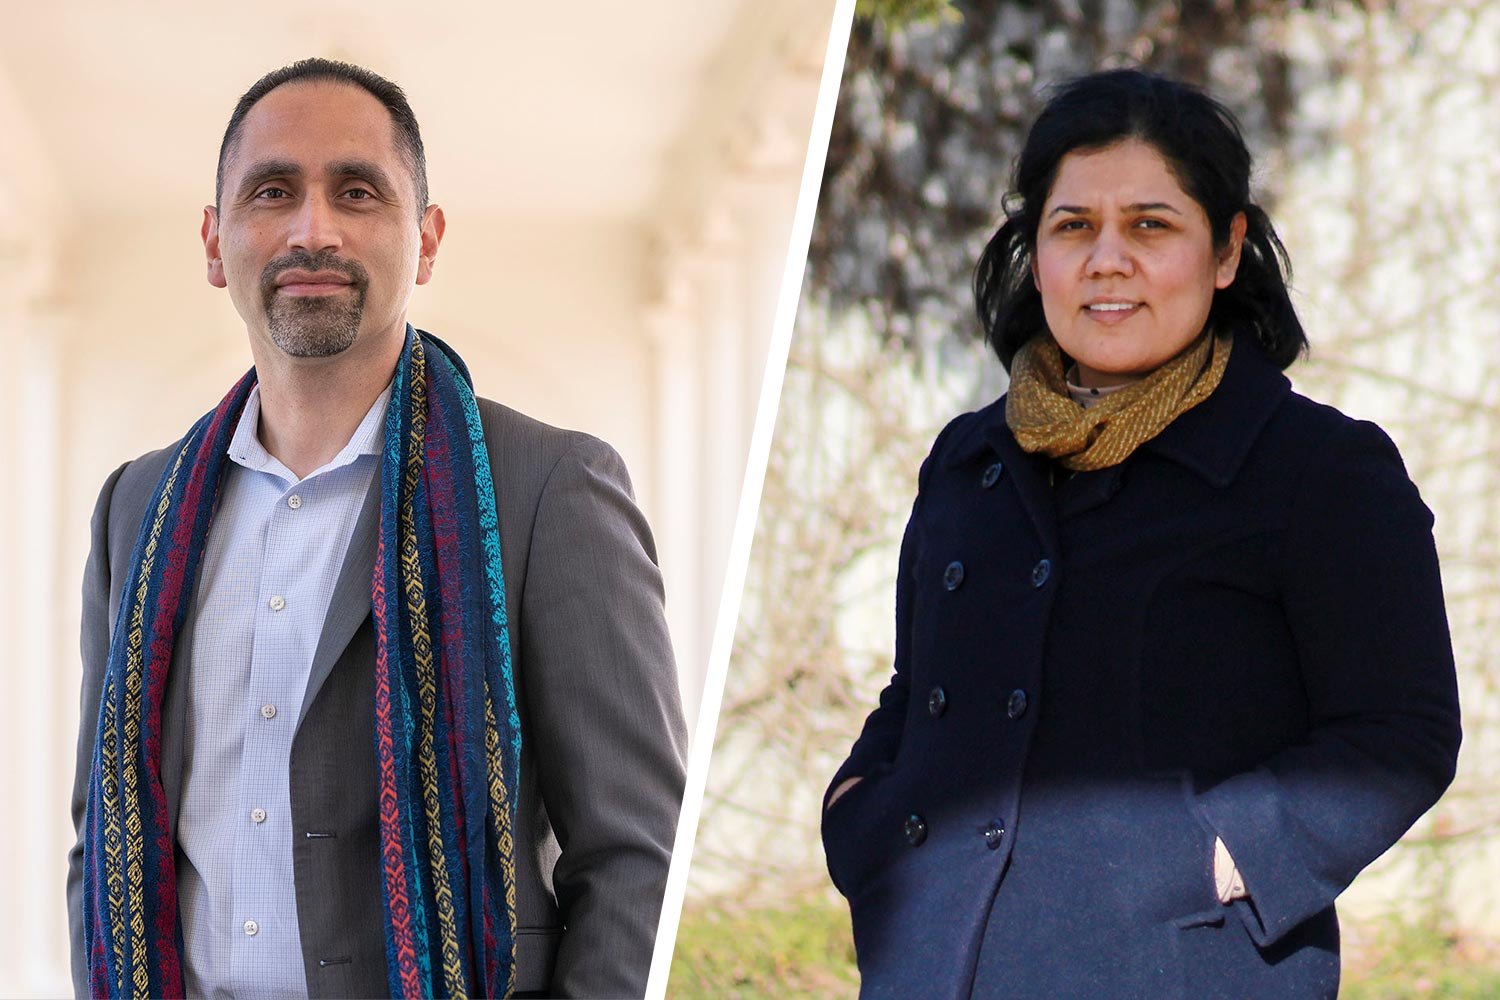 Edgar Lara and María Esparza Rodríguez are working to build a leadership program to mentor future Latinx leaders in the Charlottesville community. (Photo by Sanjay Suchak, University Communications; contributed photo)